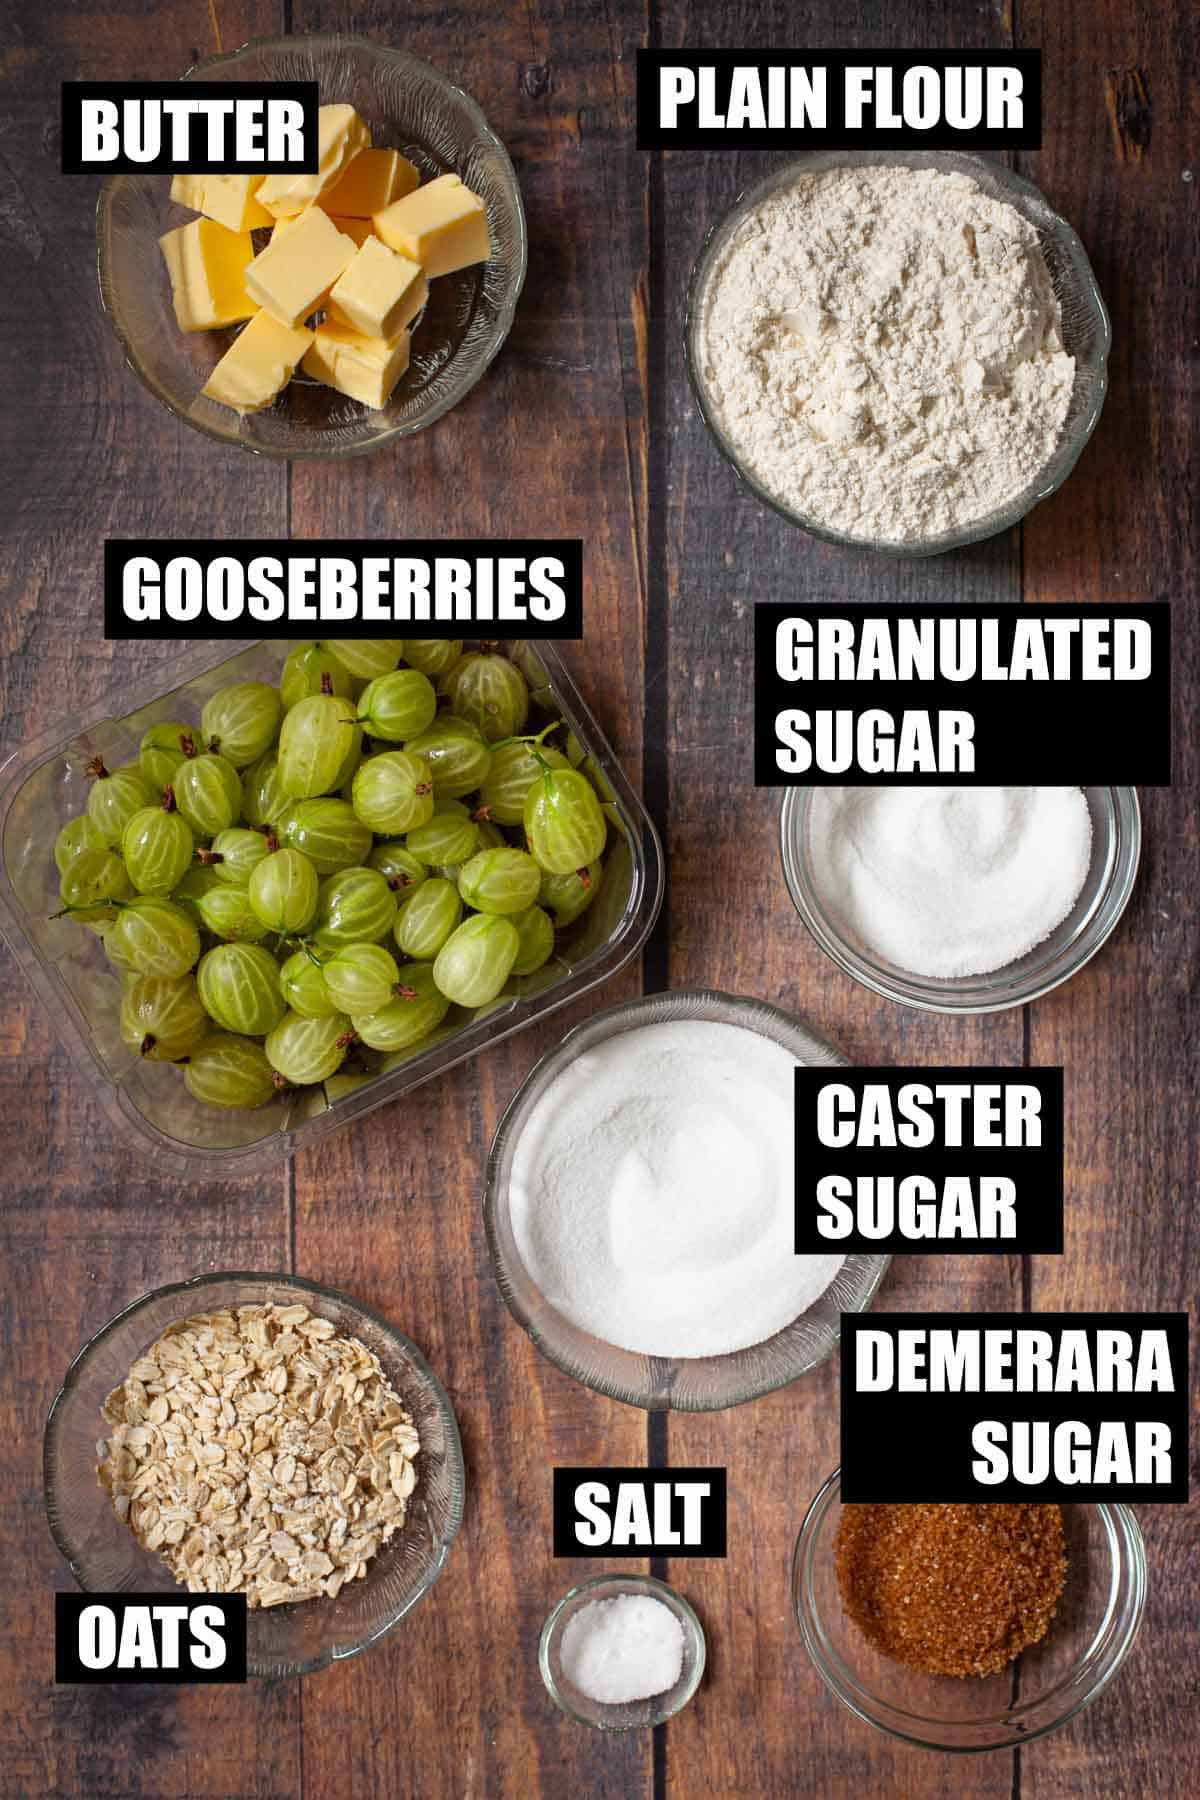 Ingredients for a gooseberry dessert with text overlay